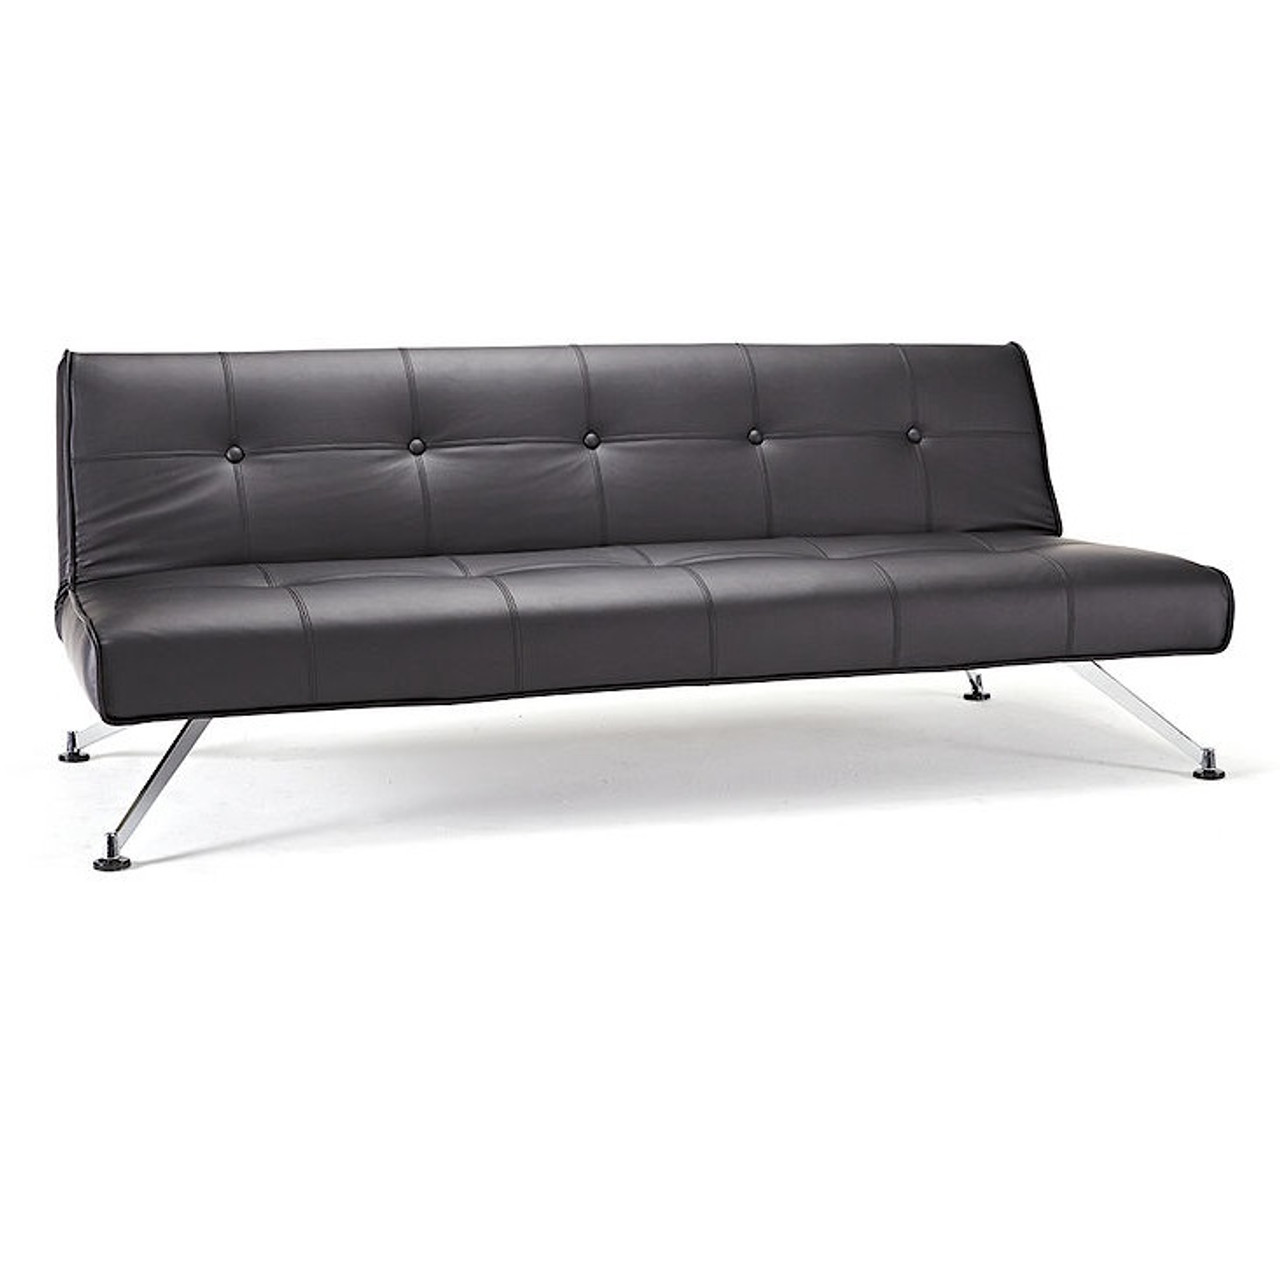 Ordinaire Clubber Convertible Sofa Bed